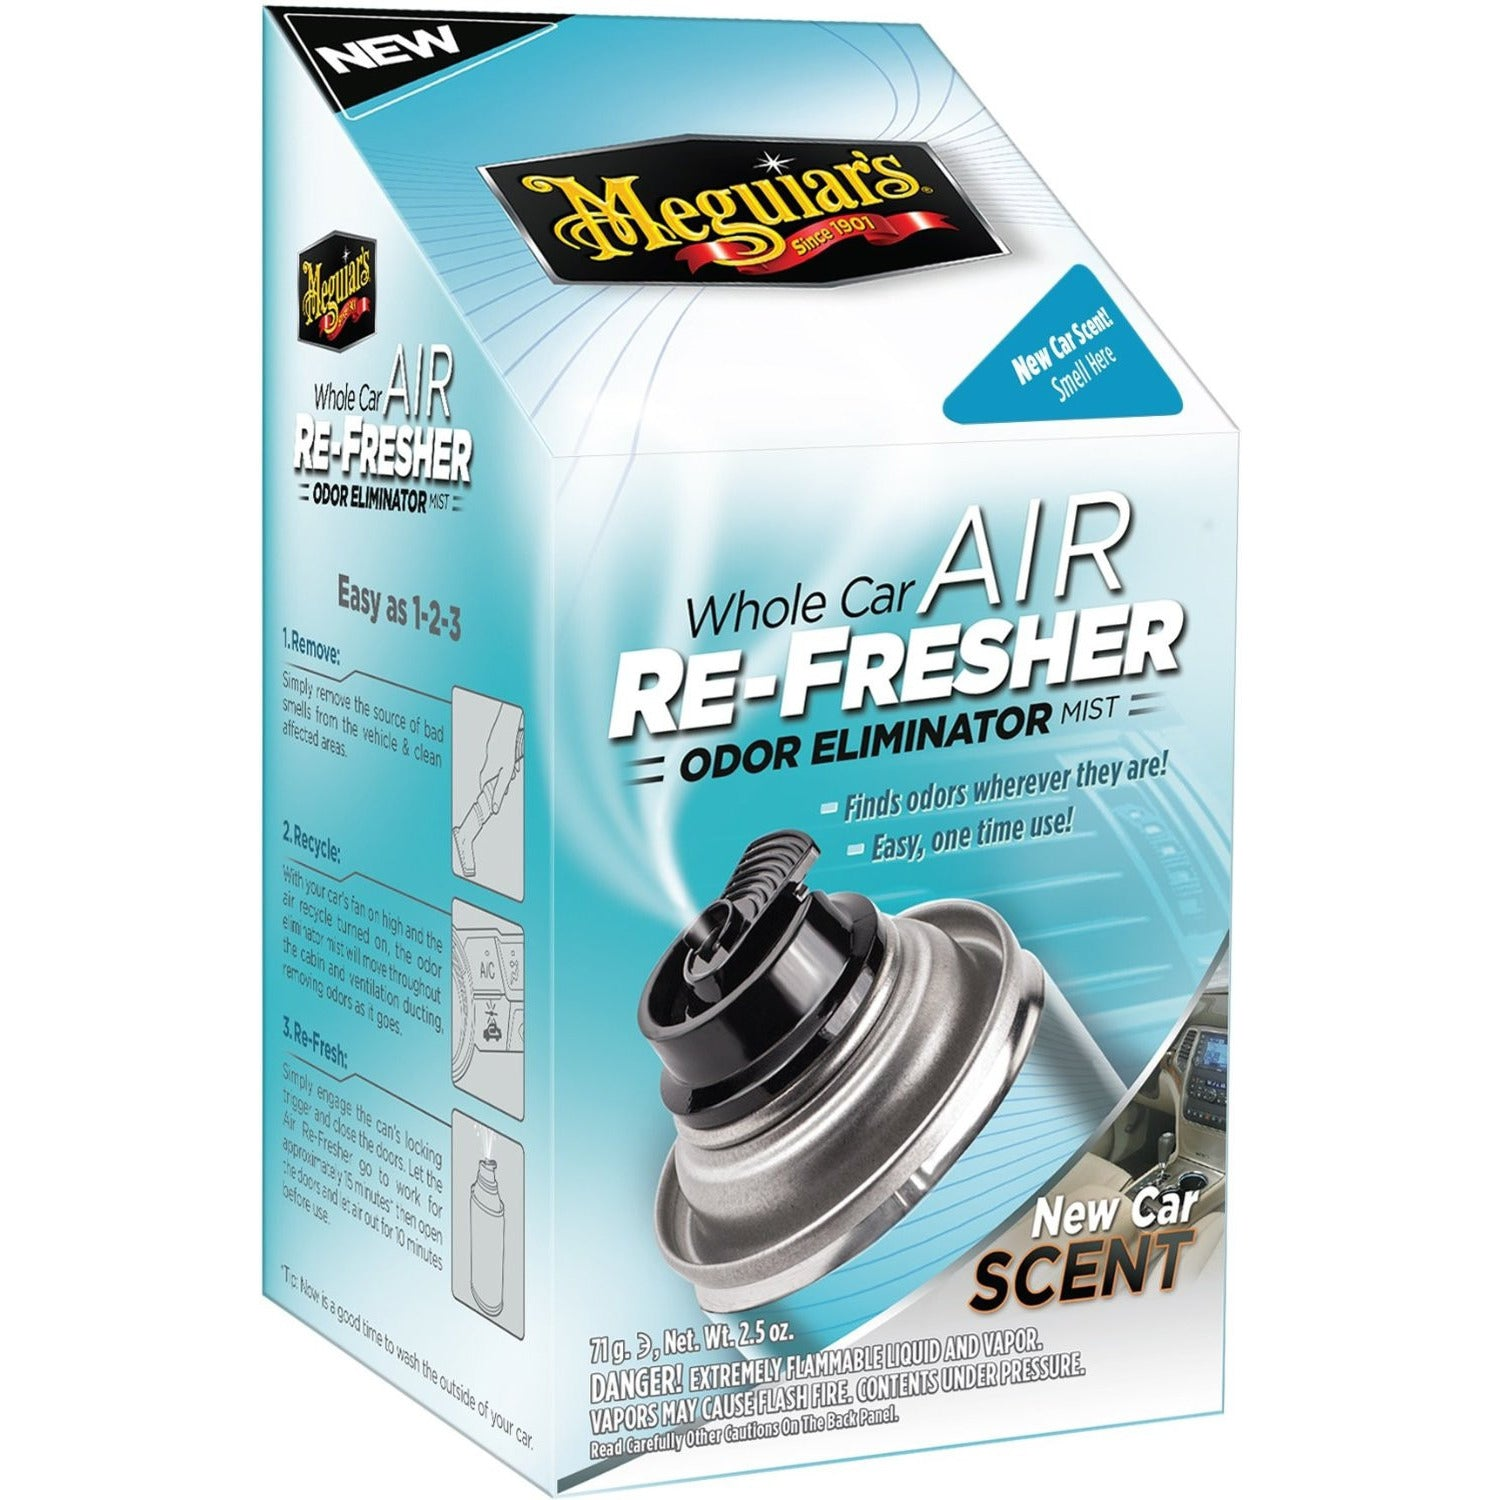 MEGUIAR'S AIR RE-FRESHNER